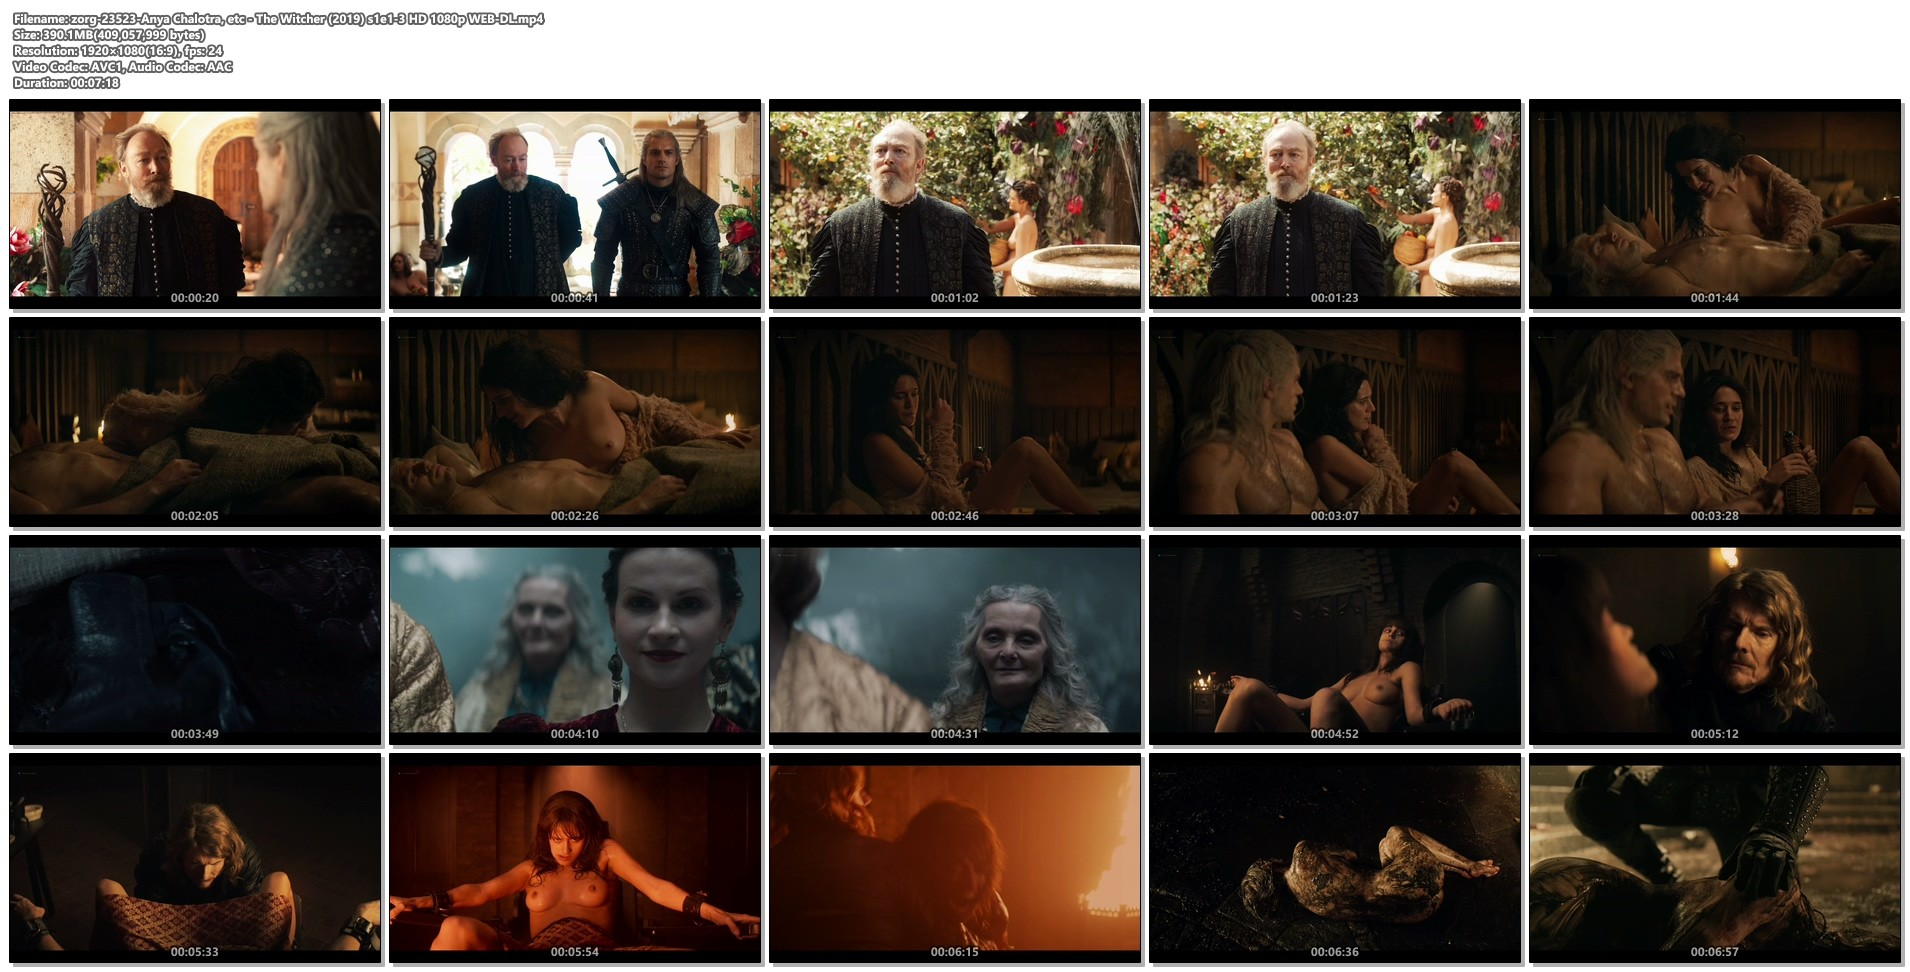 Anya Chalotra nude sex others nude too - The Witcher (2019) s1e1-3 HD 1080p WEB-DL (1)